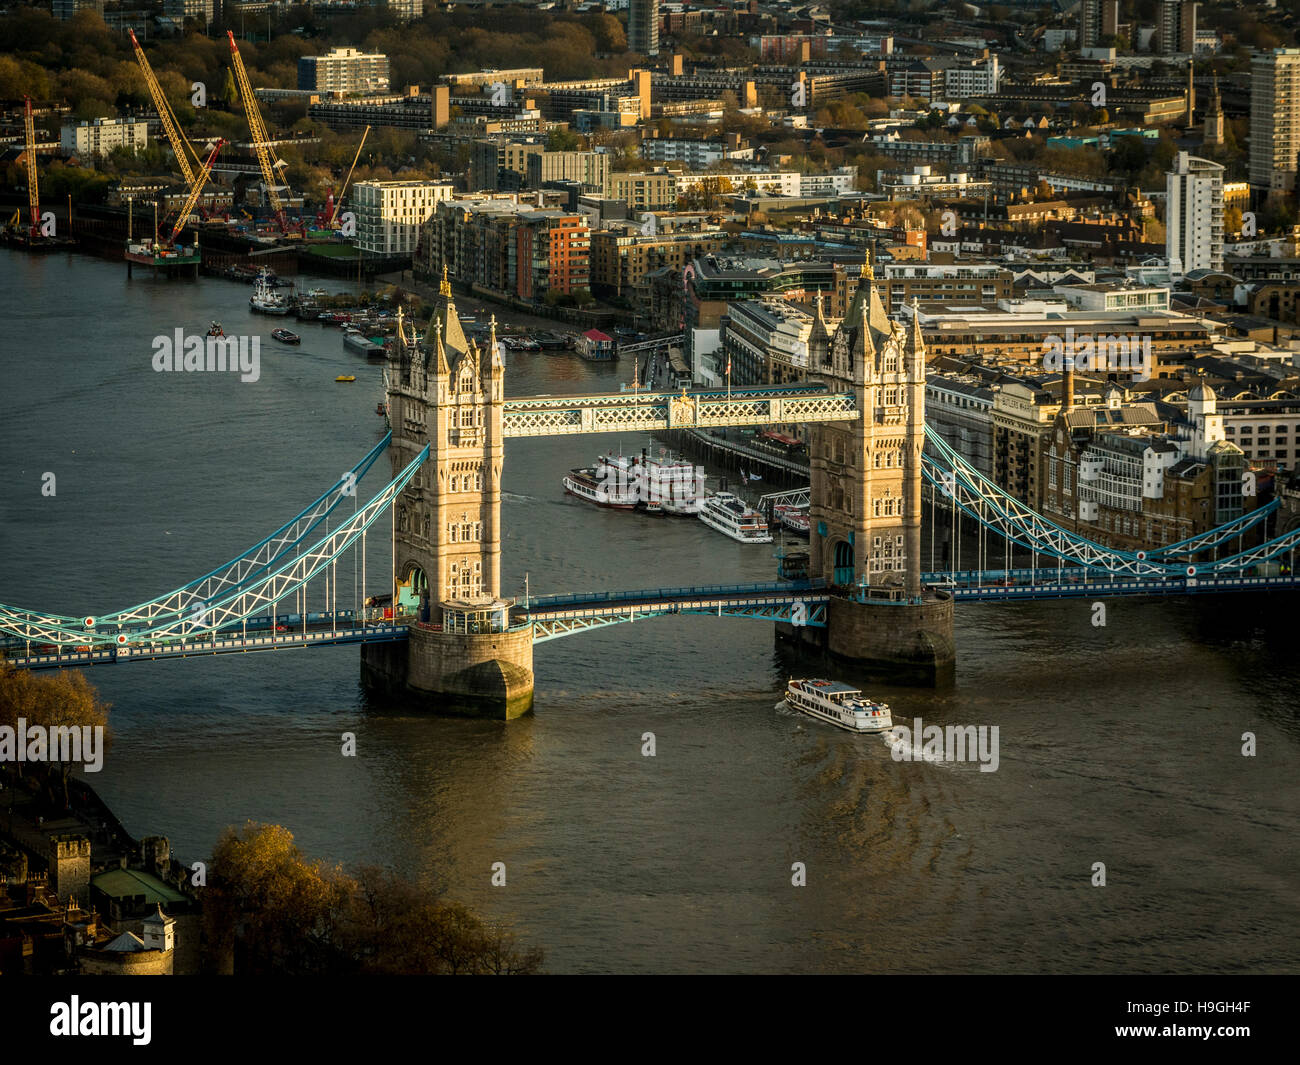 Tower Bridge over the river Thames, London, UK. - Stock Image